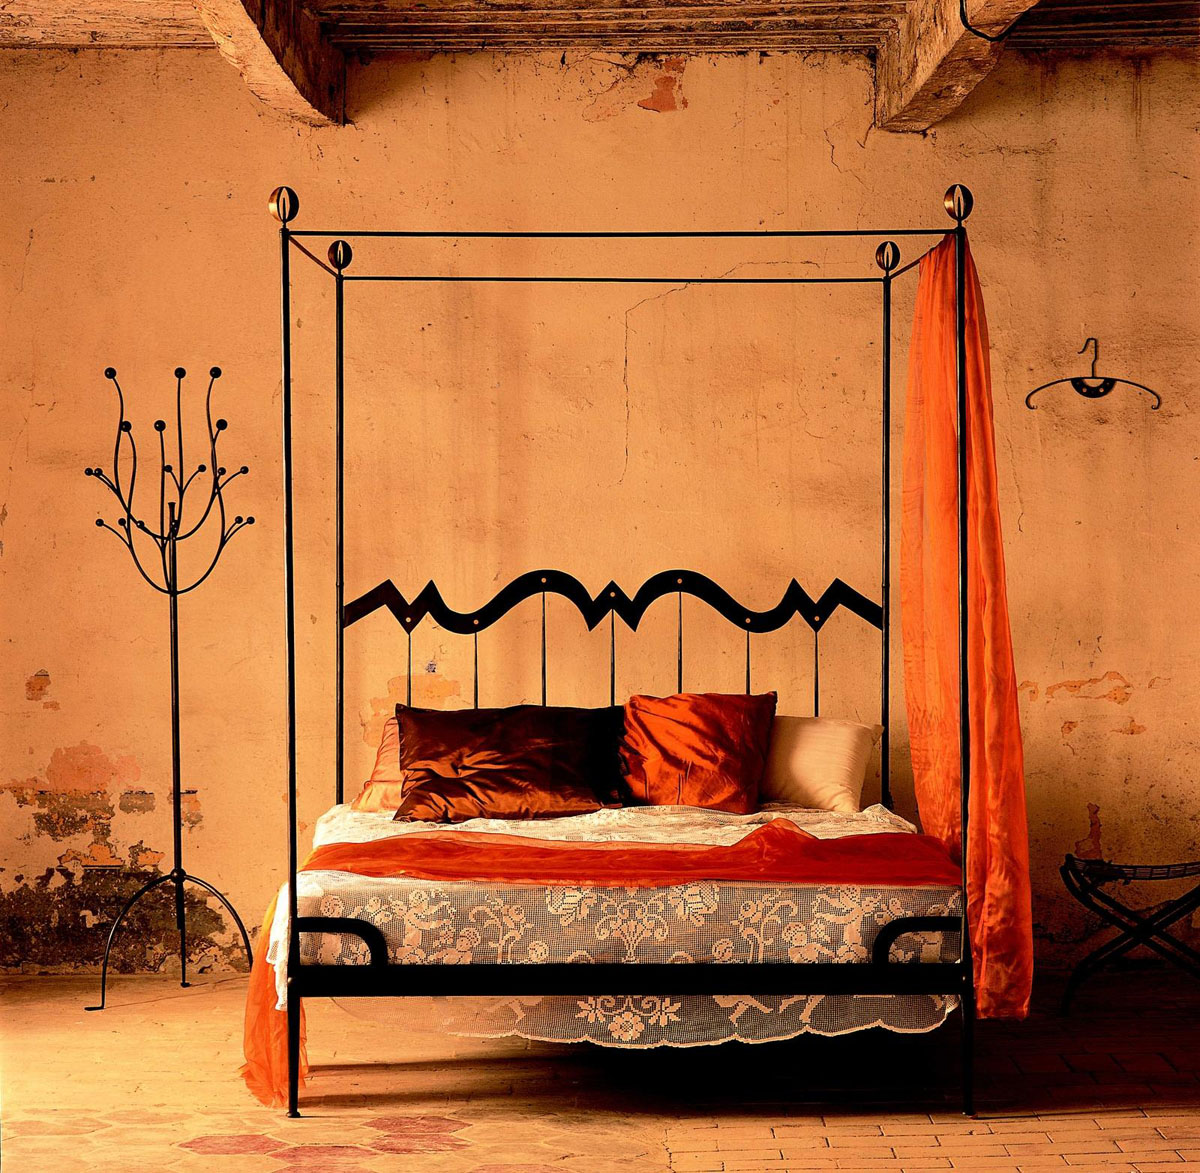 Bedrooms idesignarch interior design architecture for Old world style beds